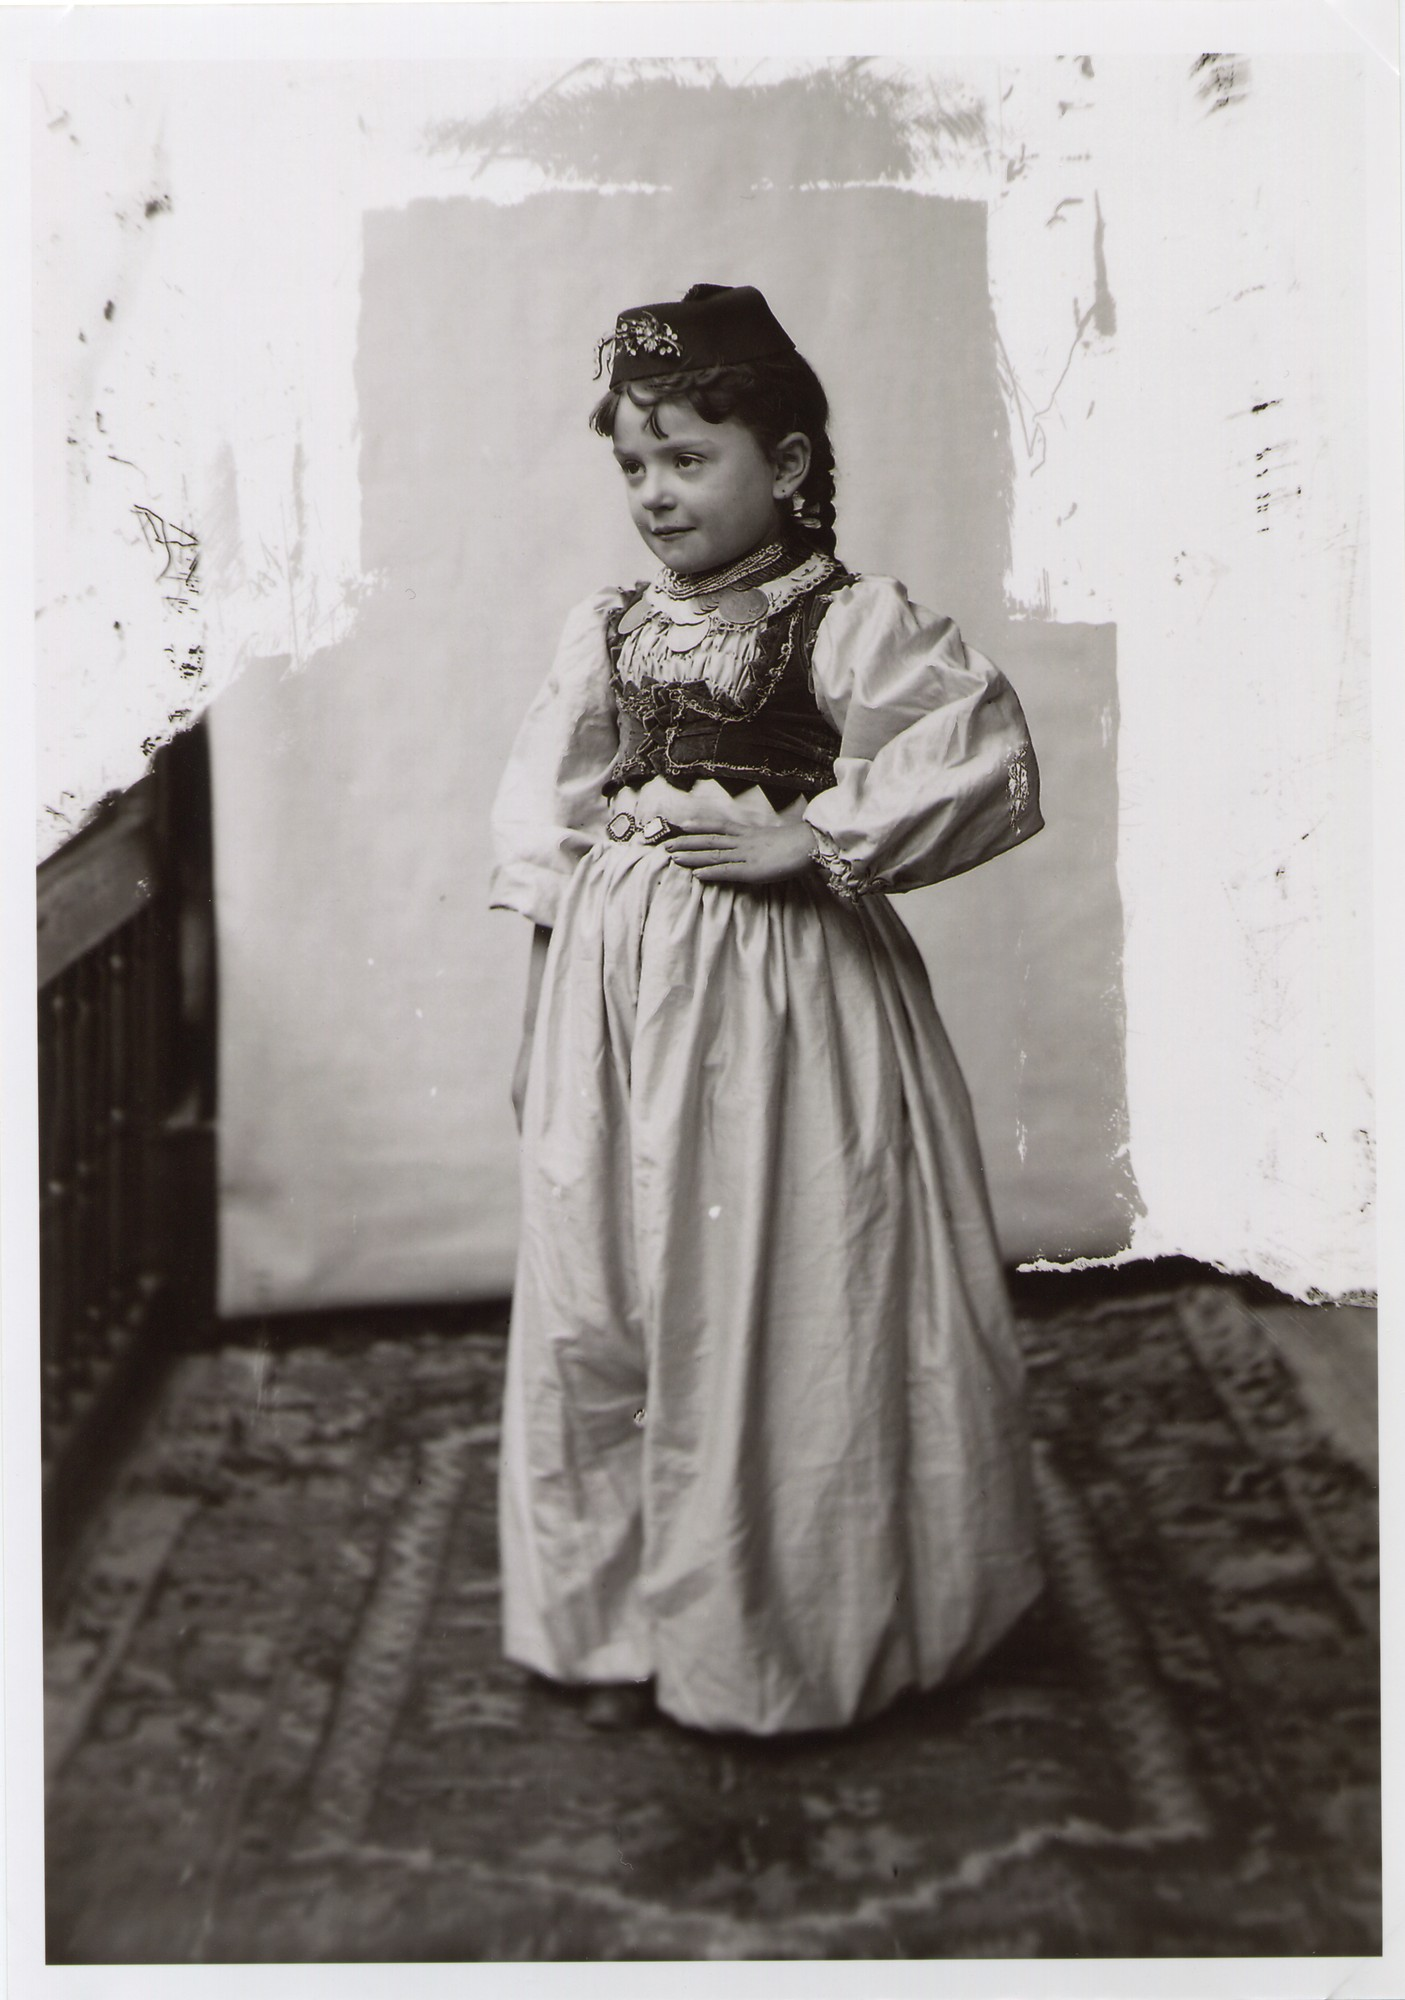 Sephardic Jewish girl's costume, © The National Museum of Bosnia and Herzegovina